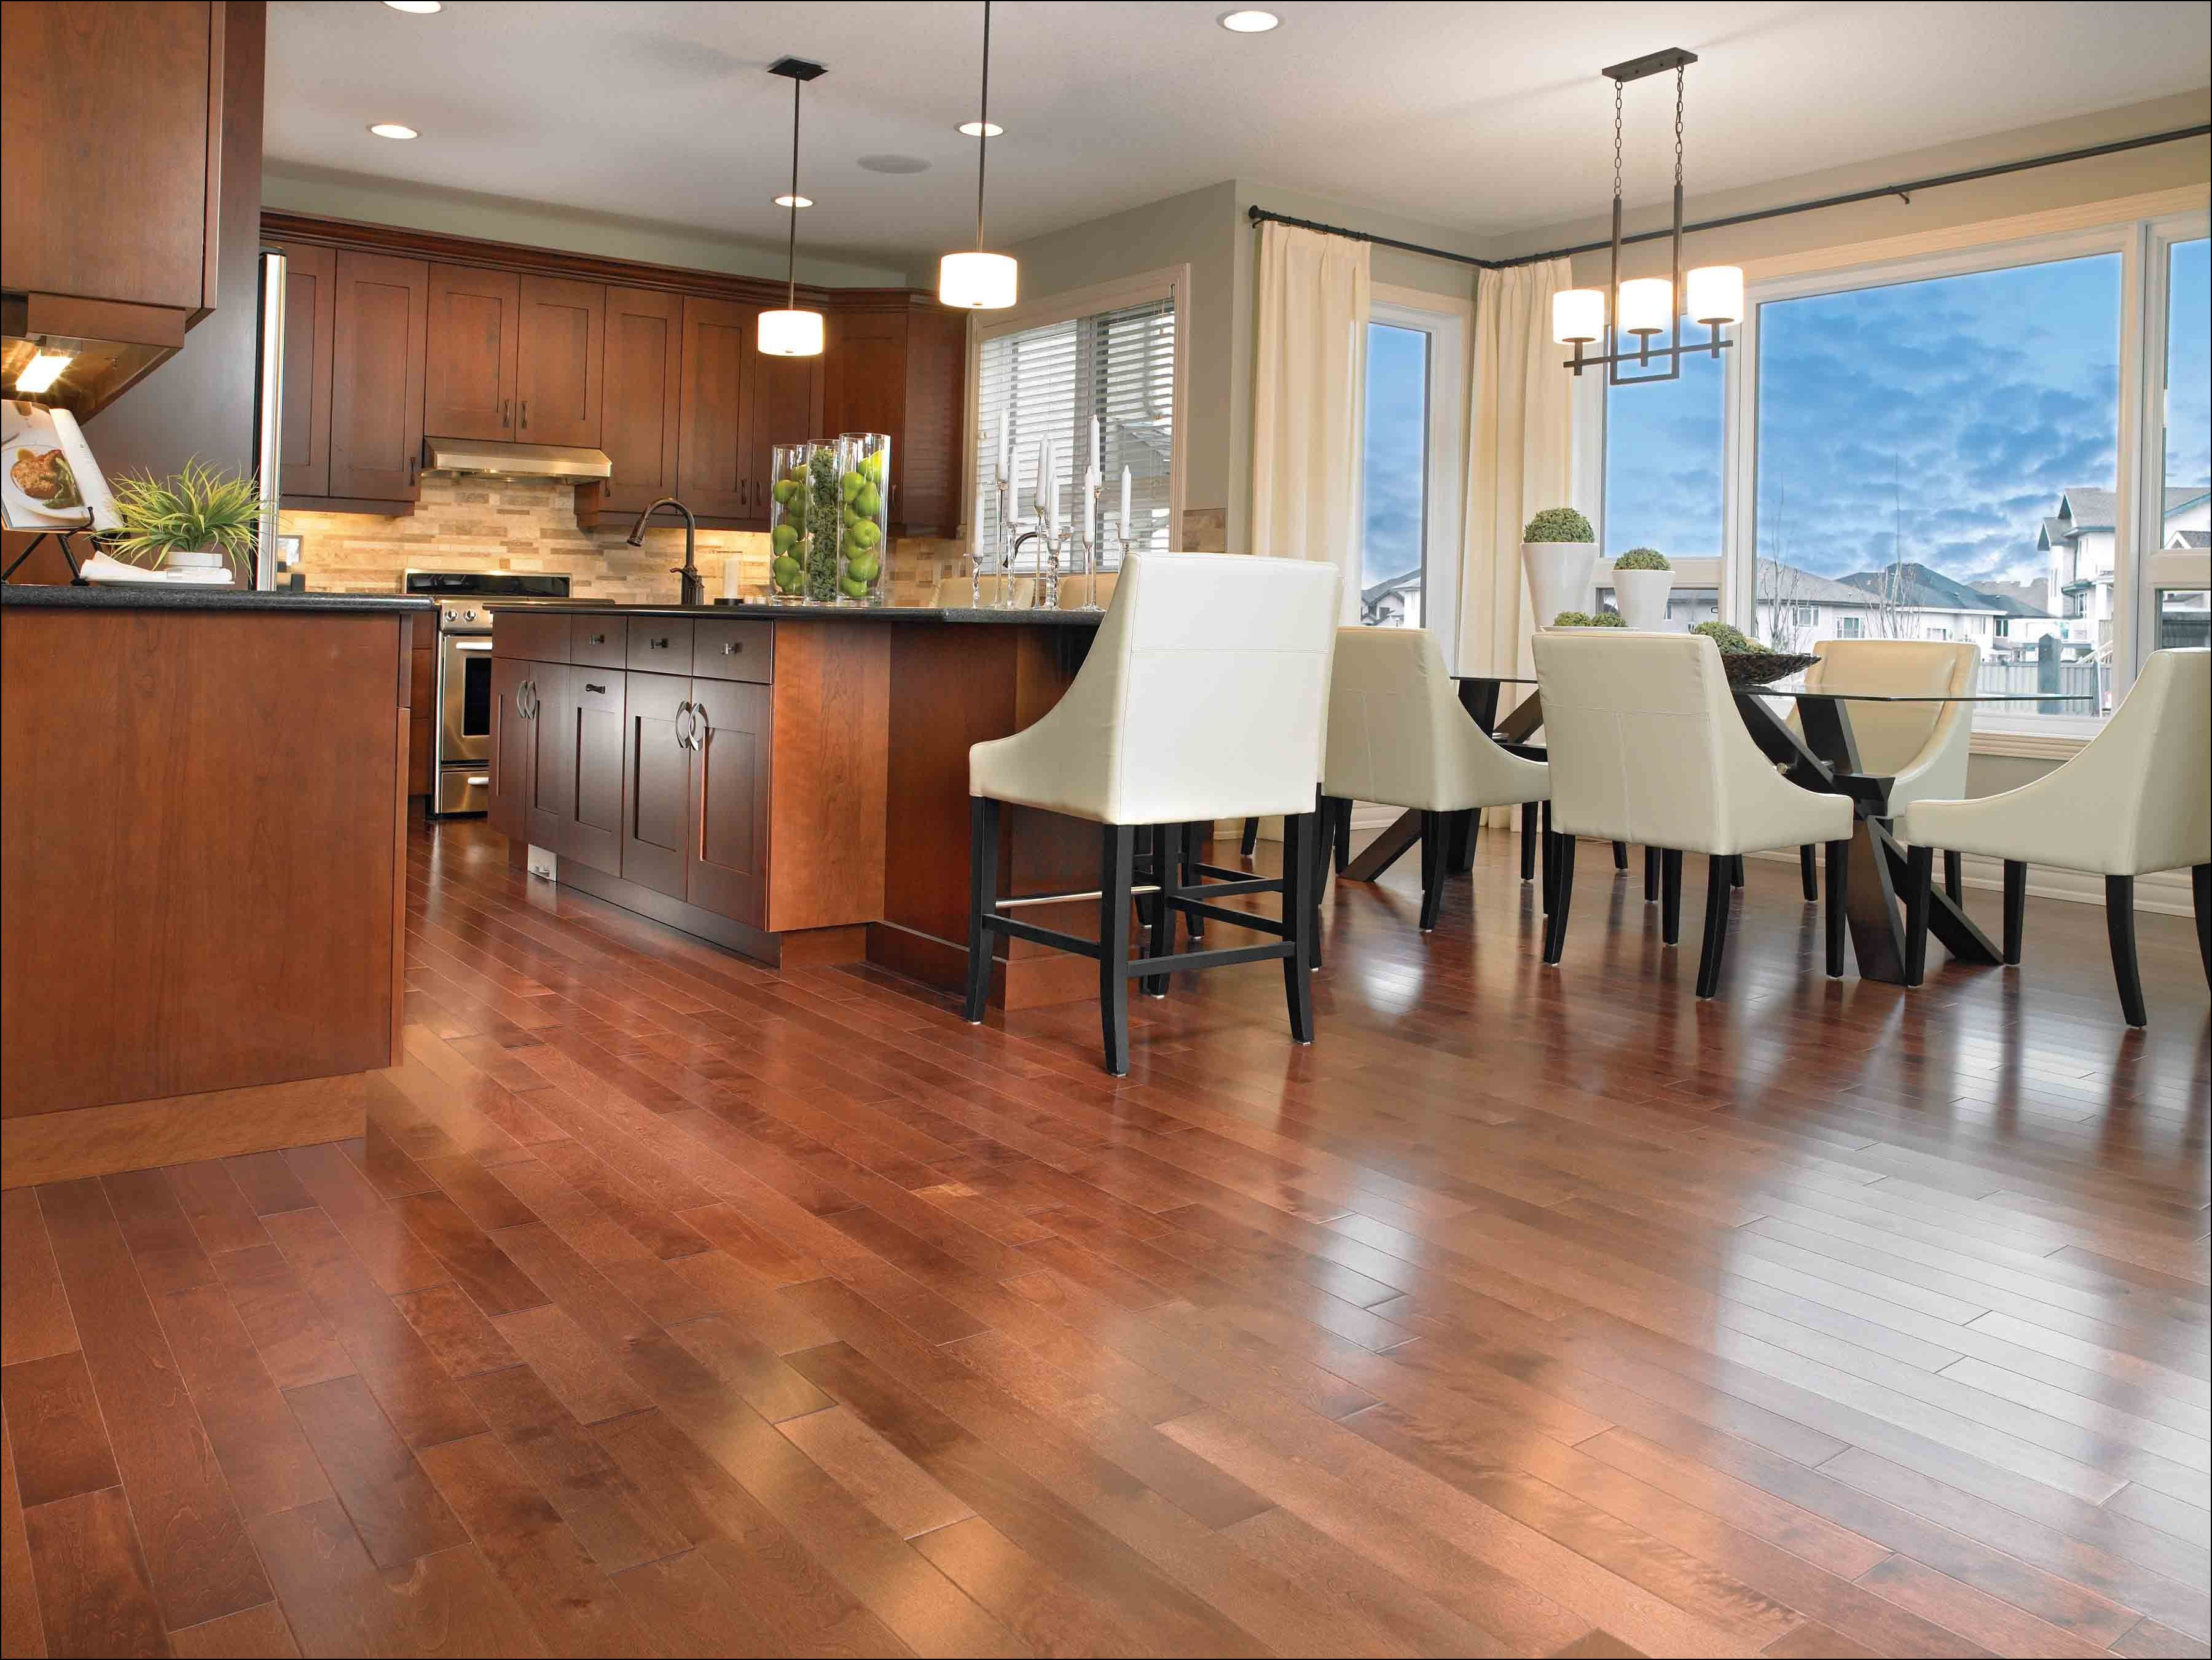 hardwood floor refinishing toronto reviews of hardwood flooring suppliers france flooring ideas within hardwood flooring installation san diego images 54 best exotic flooring images on pinterest of hardwood flooring